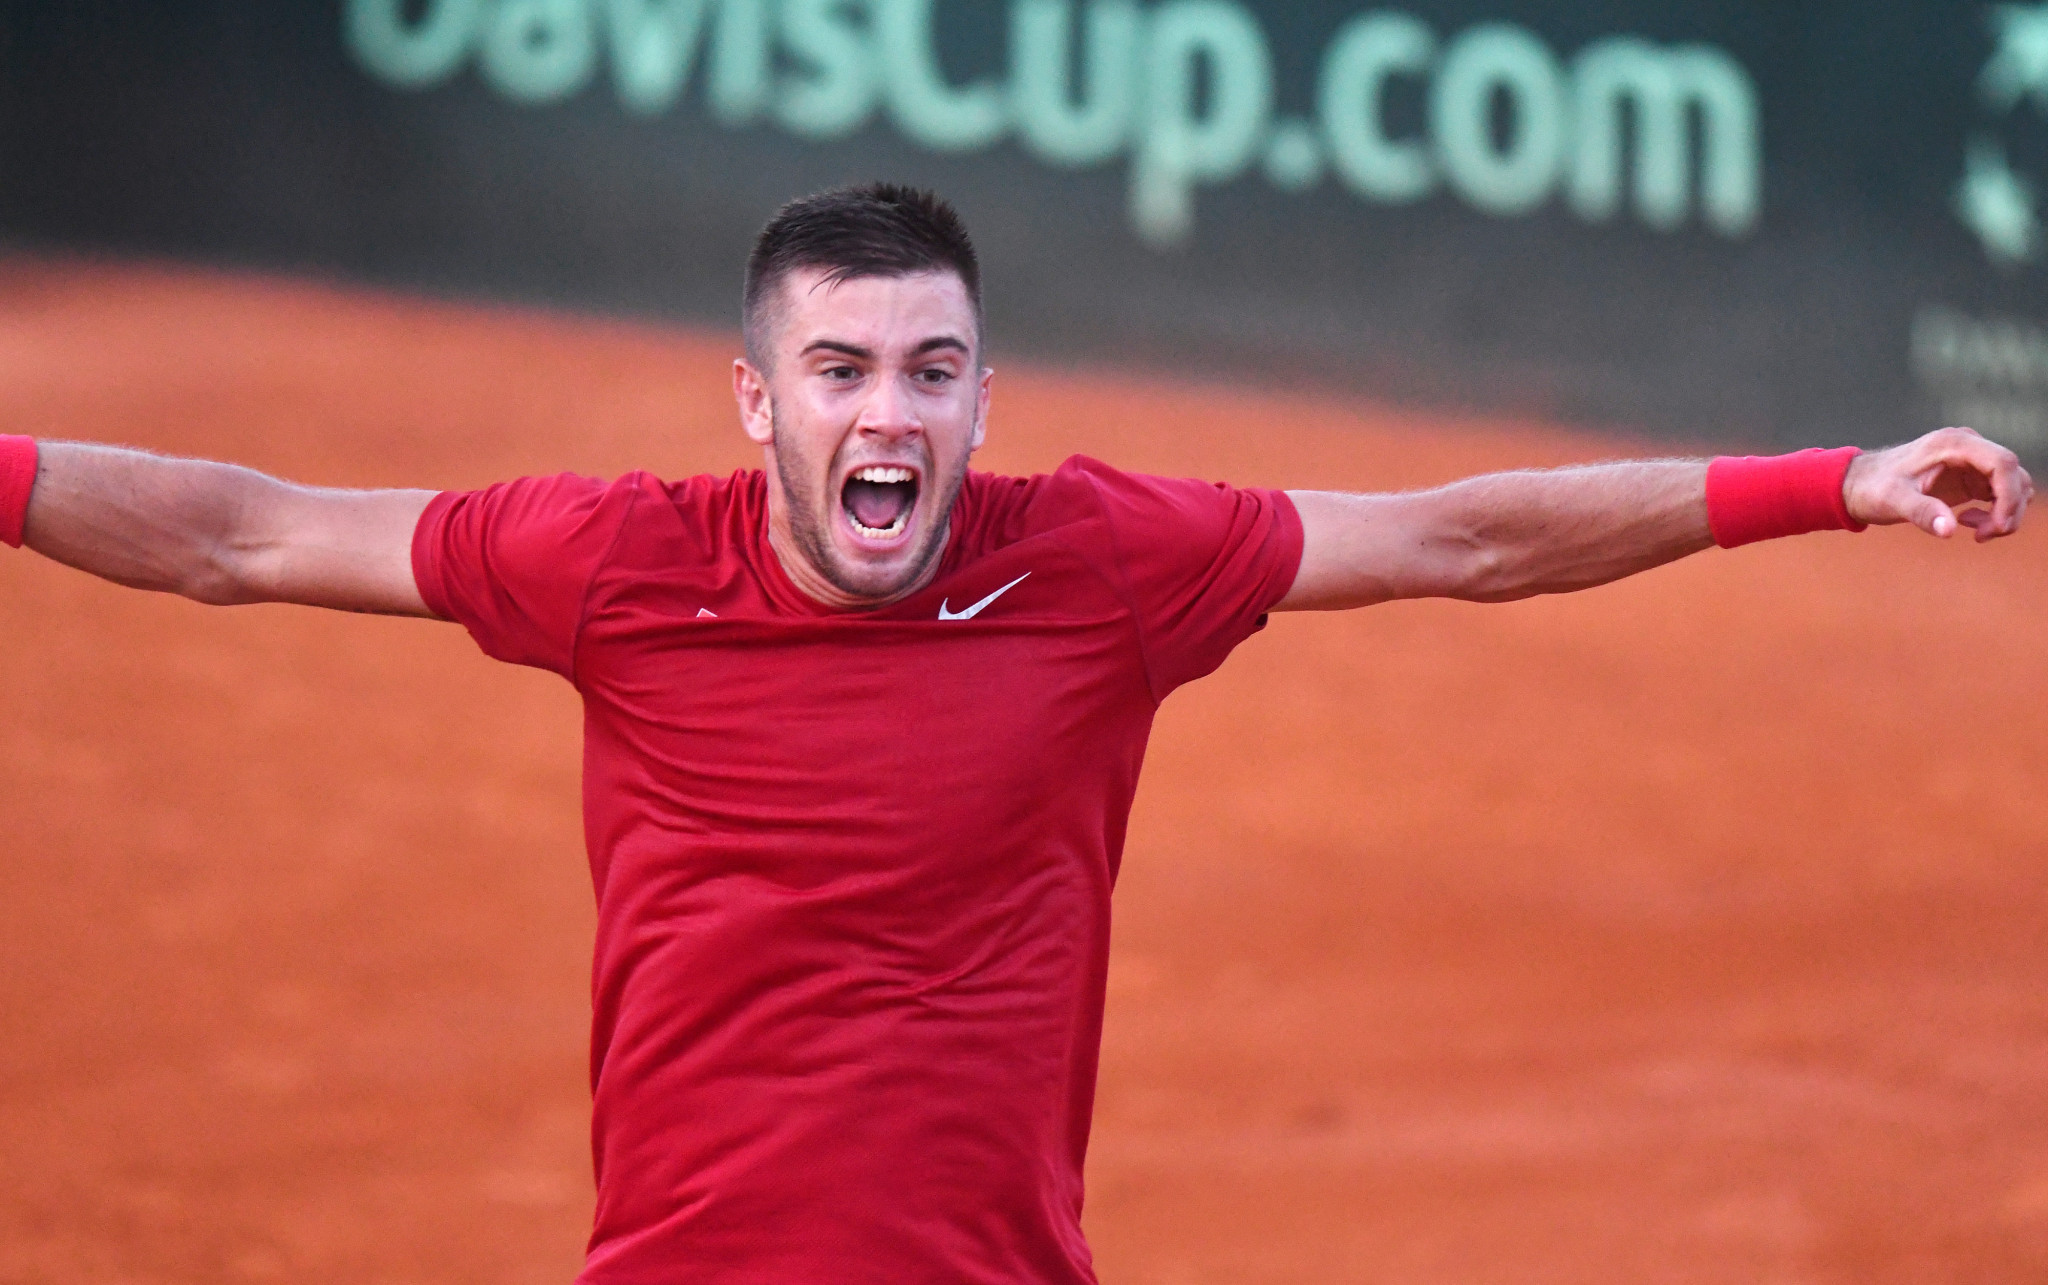 Borna Coric secured Croatia's place in the Davis Cup final after he overcame American opponent Frances Tiafoe ©Getty Images